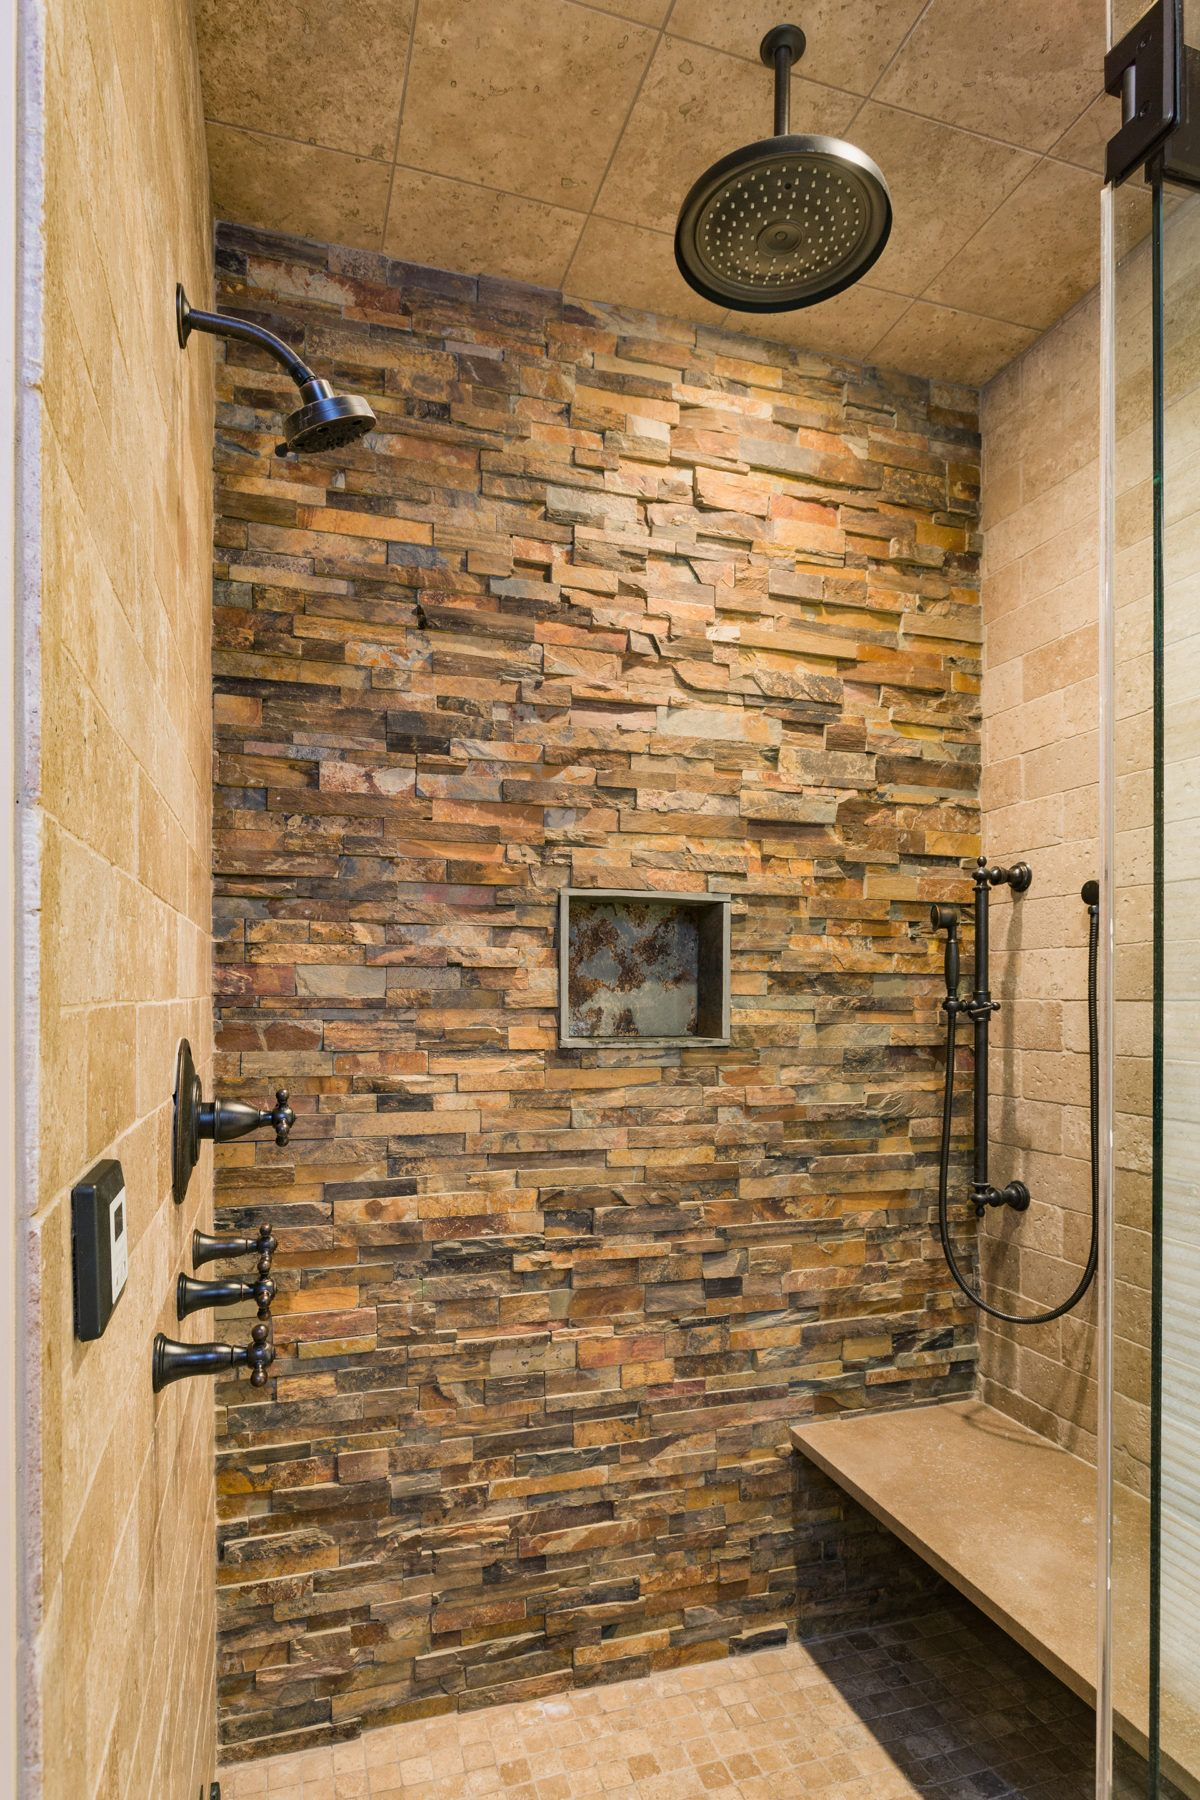 Bad eitelkeit design amazing stone work in this bathroom with multiple shower heads and a